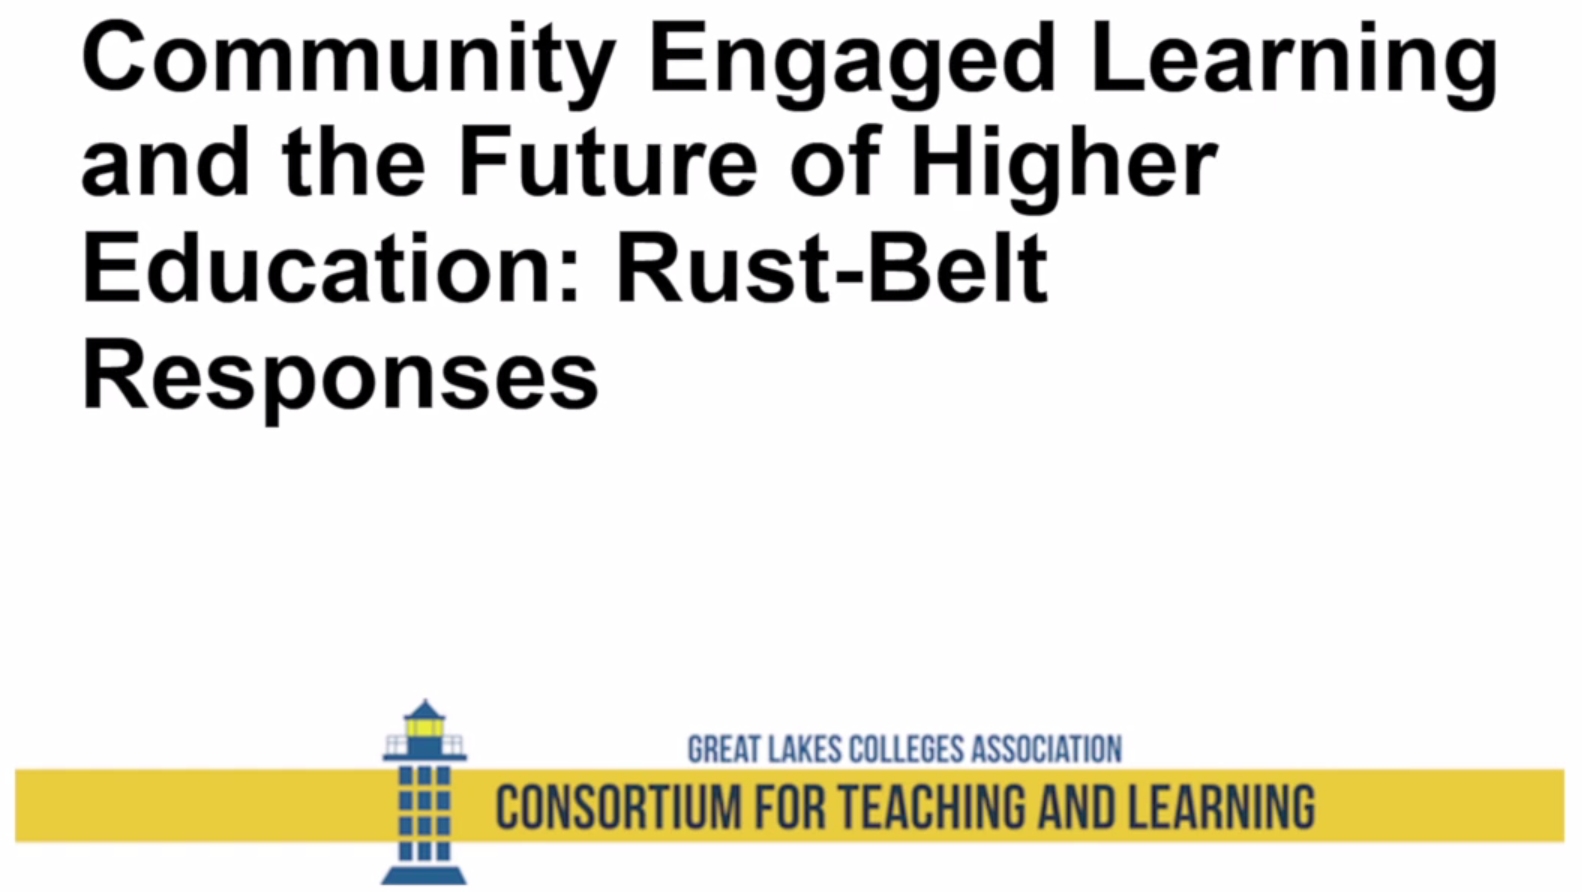 Community Engaged Learning: Rust Belt Narratives